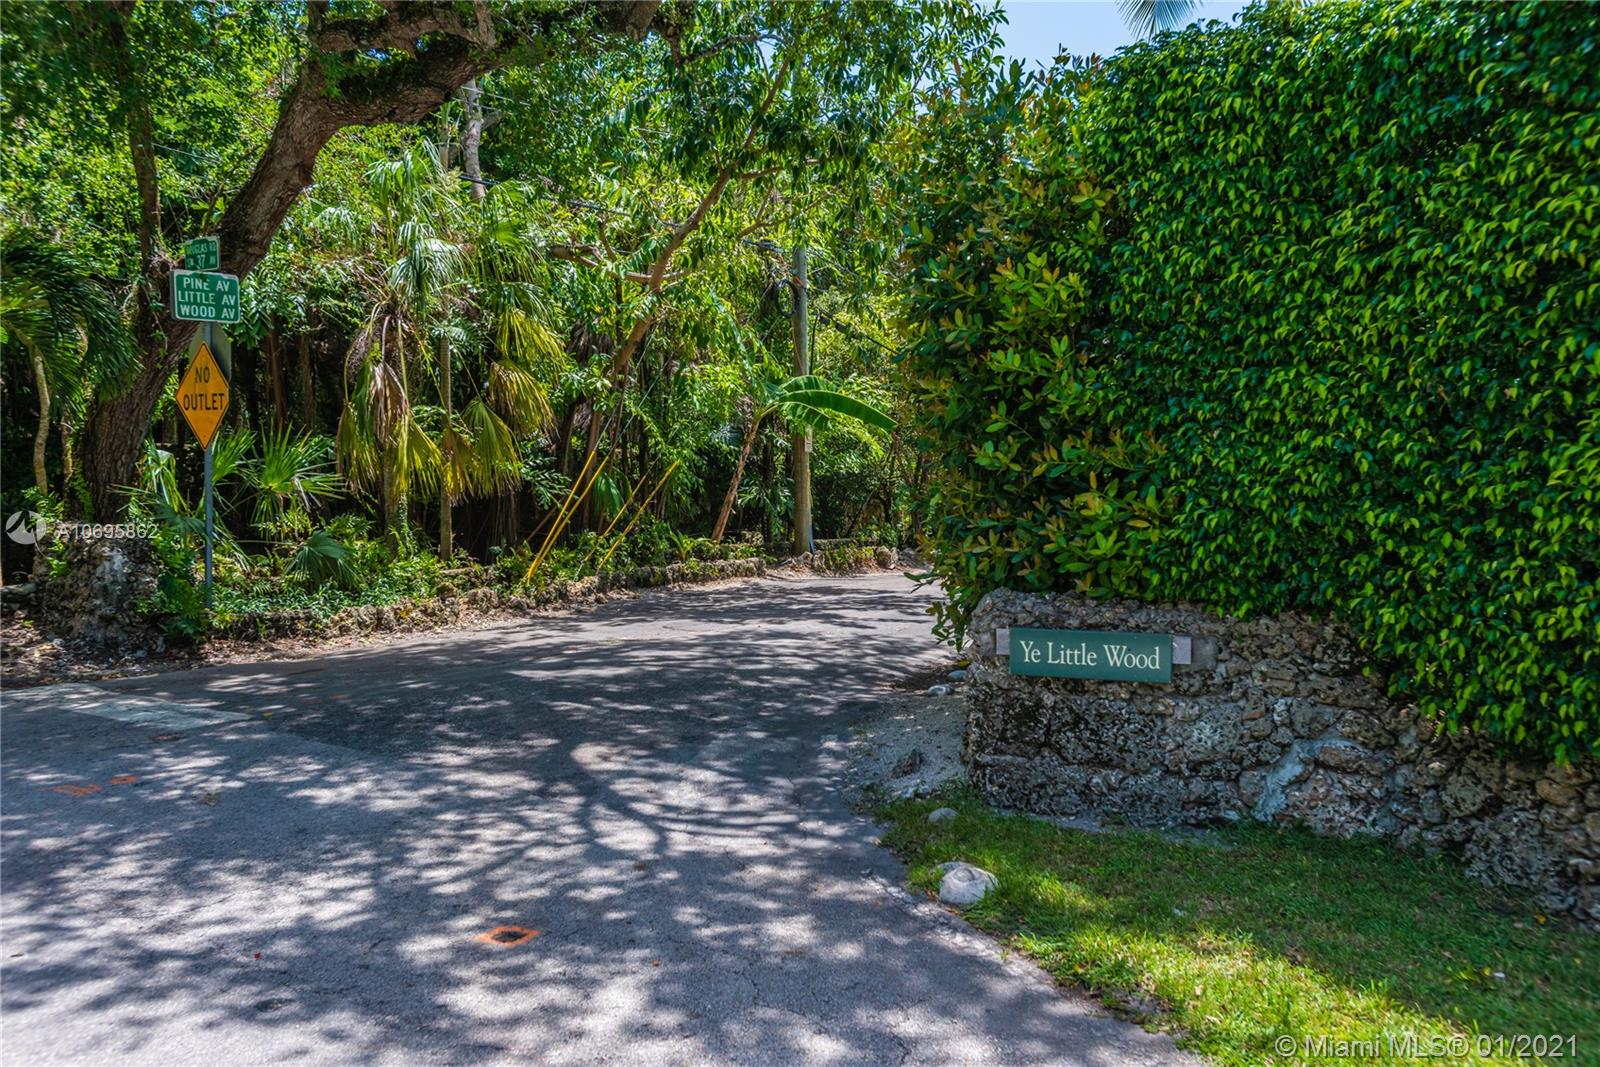 Spectacular High & Dry half acre tropical paradise in Ye Little Wood, South Coconut Grove's quintessential, private, gated enclave of 31 homes. Beautiful sited home has excellent floor plan with solid hardwd floors, open beamed ceilings, walls of windows, new roof and lots of natural light throughout. Lovely covered veranda and elegant center foyer entry, wide open formal living & family rooms, fireplace, formal dining room, butler's pantry and large eat-in kitchen. Huge covered terrace with terrazzo patio and summer kitchen provide living al fresco. Wide hallways access the Master BR suite, bath, dressing area, large closets +2 additional bedrooms & bath. 4th BR +separate bath are located off the kitchen, over-sized 2 car garage and utility areas. Plenty of room for pool and expansion.